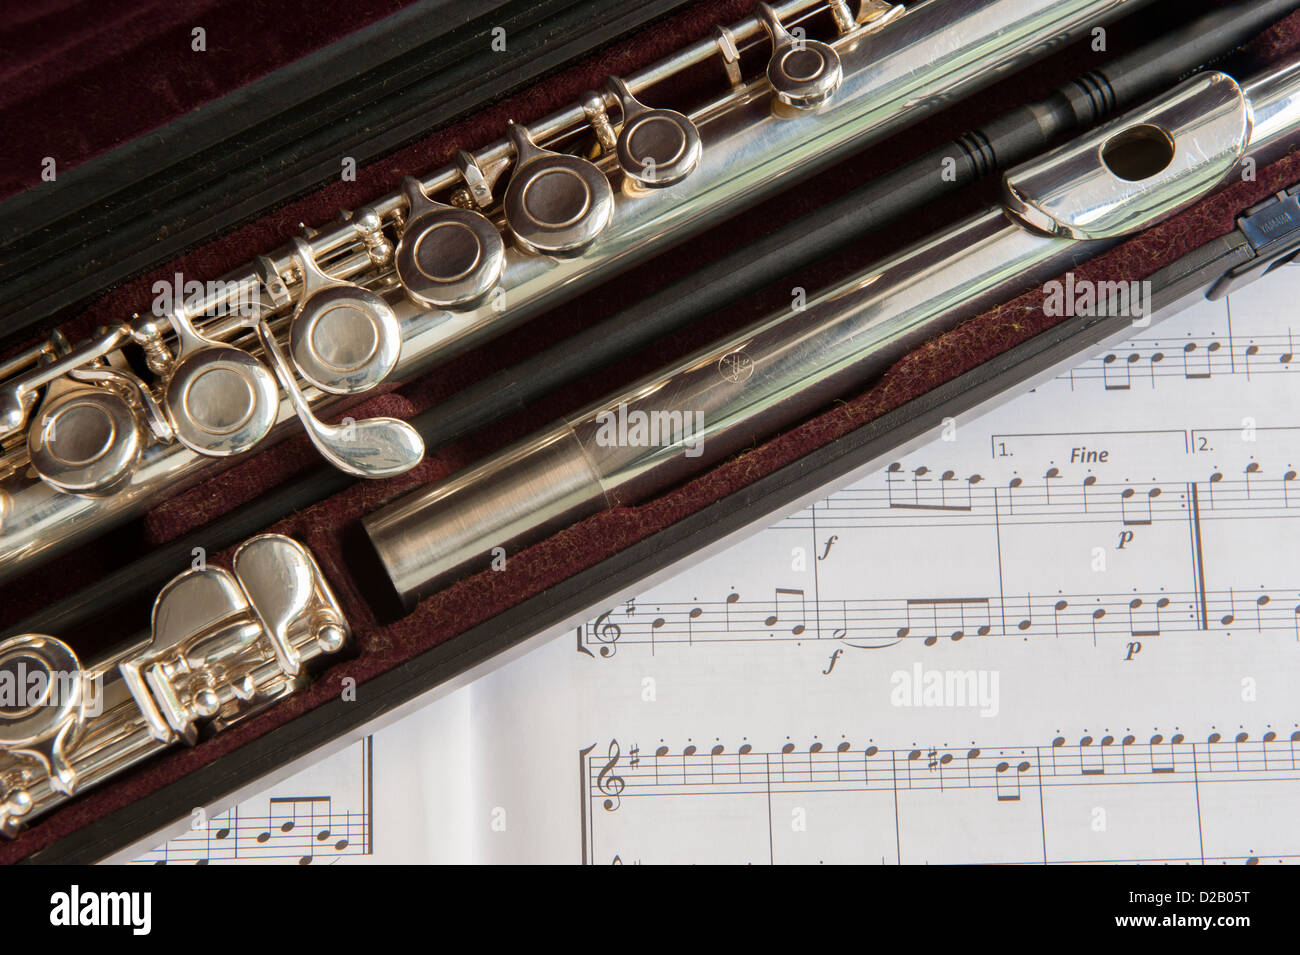 Close-up partial view of dismantled sections of flute in case (blow